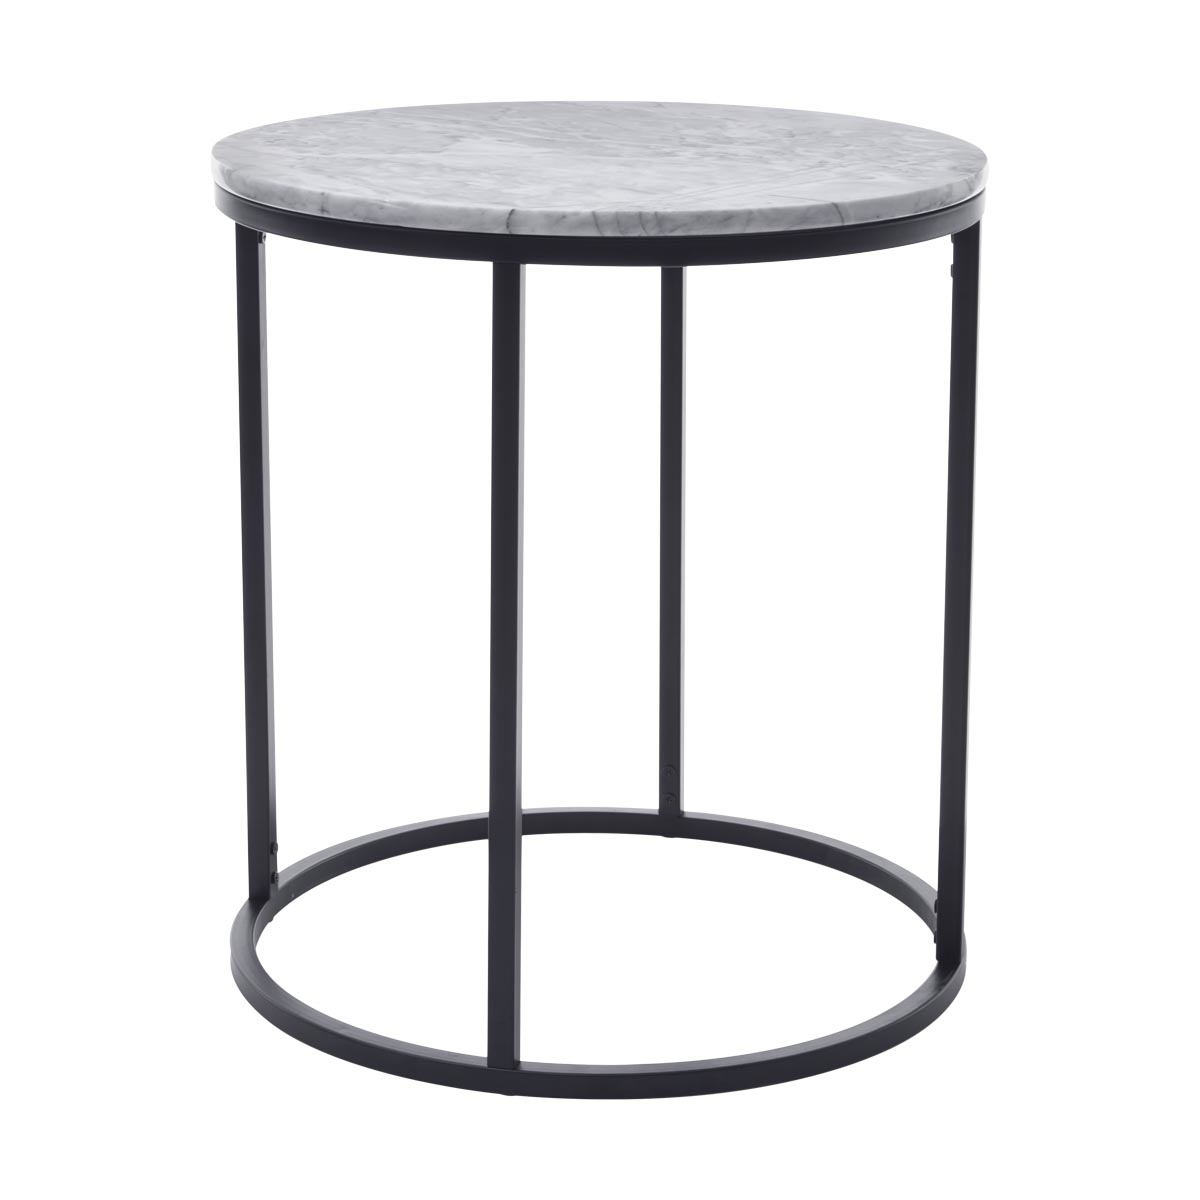 the outrageous favorite black side table kmart mira road marble hover over zoom patio chairs clearance pedestal legs for dining square runner and accent tables glass lamp small